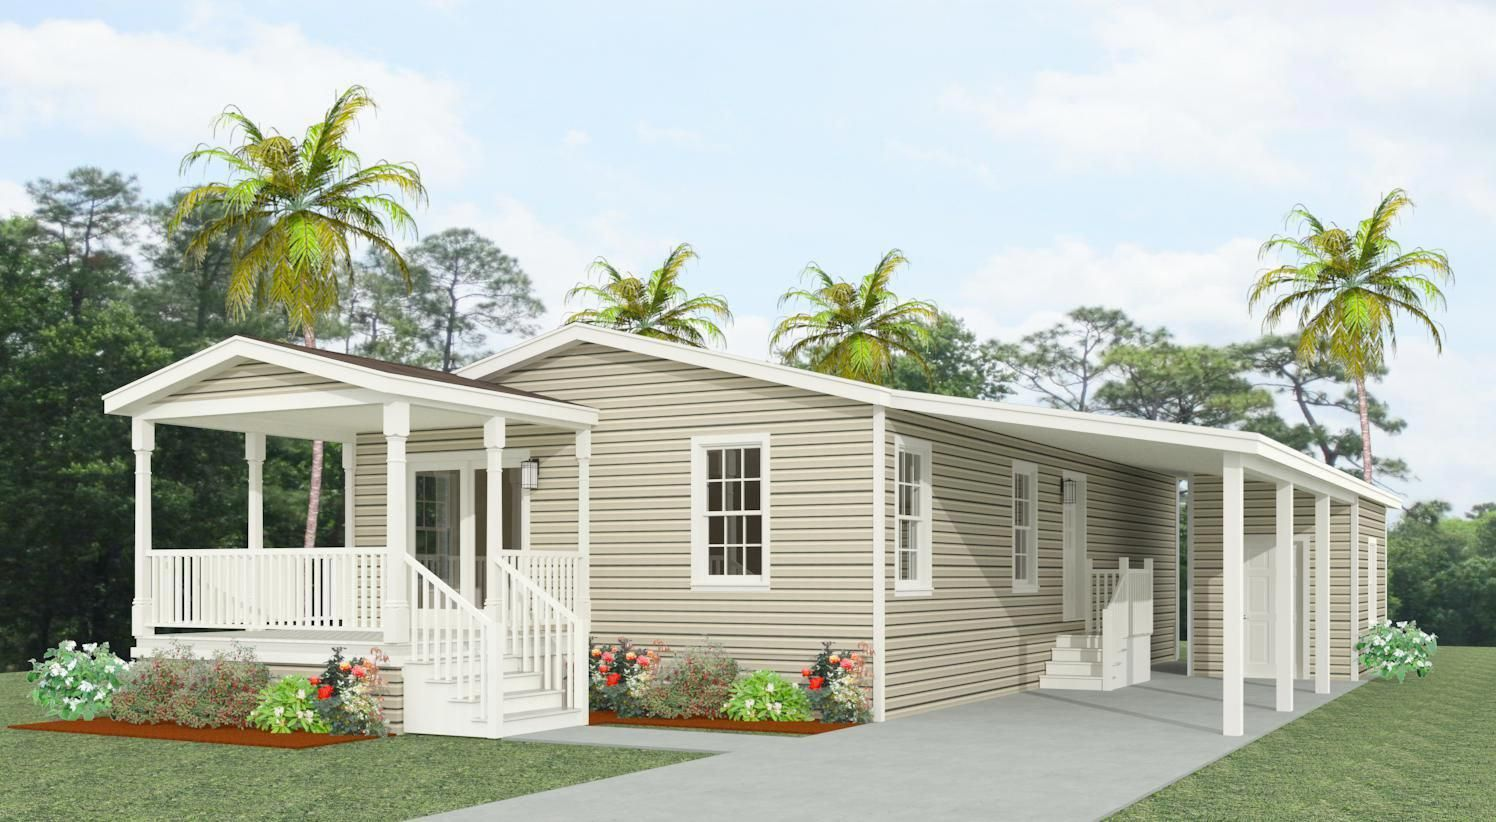 If You Re Doing Your Own Task Slash Your Materials Delivery Charges By Picking Up Products Manufactured Home Porch Manufactured Homes Floor Plans Porch Design